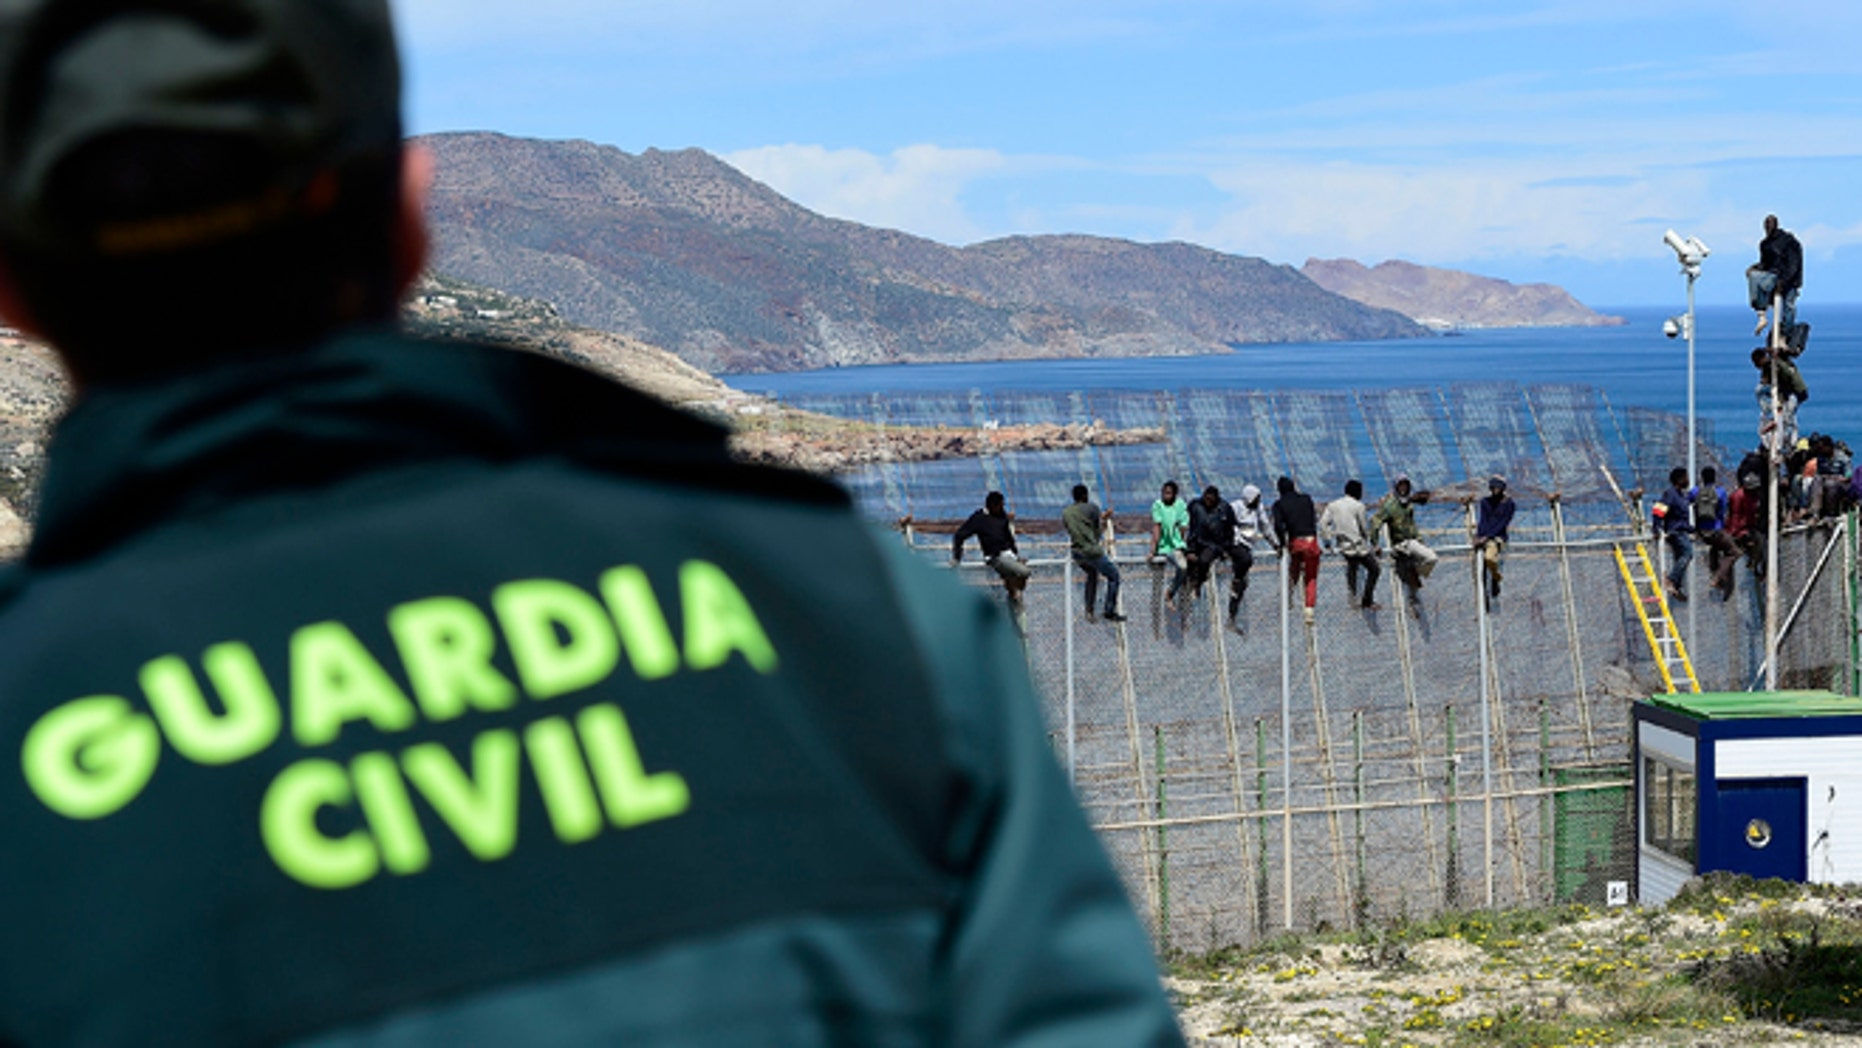 MELILLA, SPAIN - APRIL 03:  A Guardia Civil Police Officer watches African migrants who attemped to scale the fence at the border between Morocco and the North African Spanish enclave of Melilla, on April 3, 2014, in Melilla, Spain. Roughly 70 sub-Saharan migrants tried climb the fence into Melilla this morning, one had to be treated by paramedics. Melilla is a Spanish city and an exclave on the north coast of Africa sharing a border with Morocco. Almost one week ago Some 800 sub- Saharan people made several attempts to reach Spain and according to official sources, ten of them managed to enter Spanish territory.  (Photo by Alexander Koerner/Getty Images)